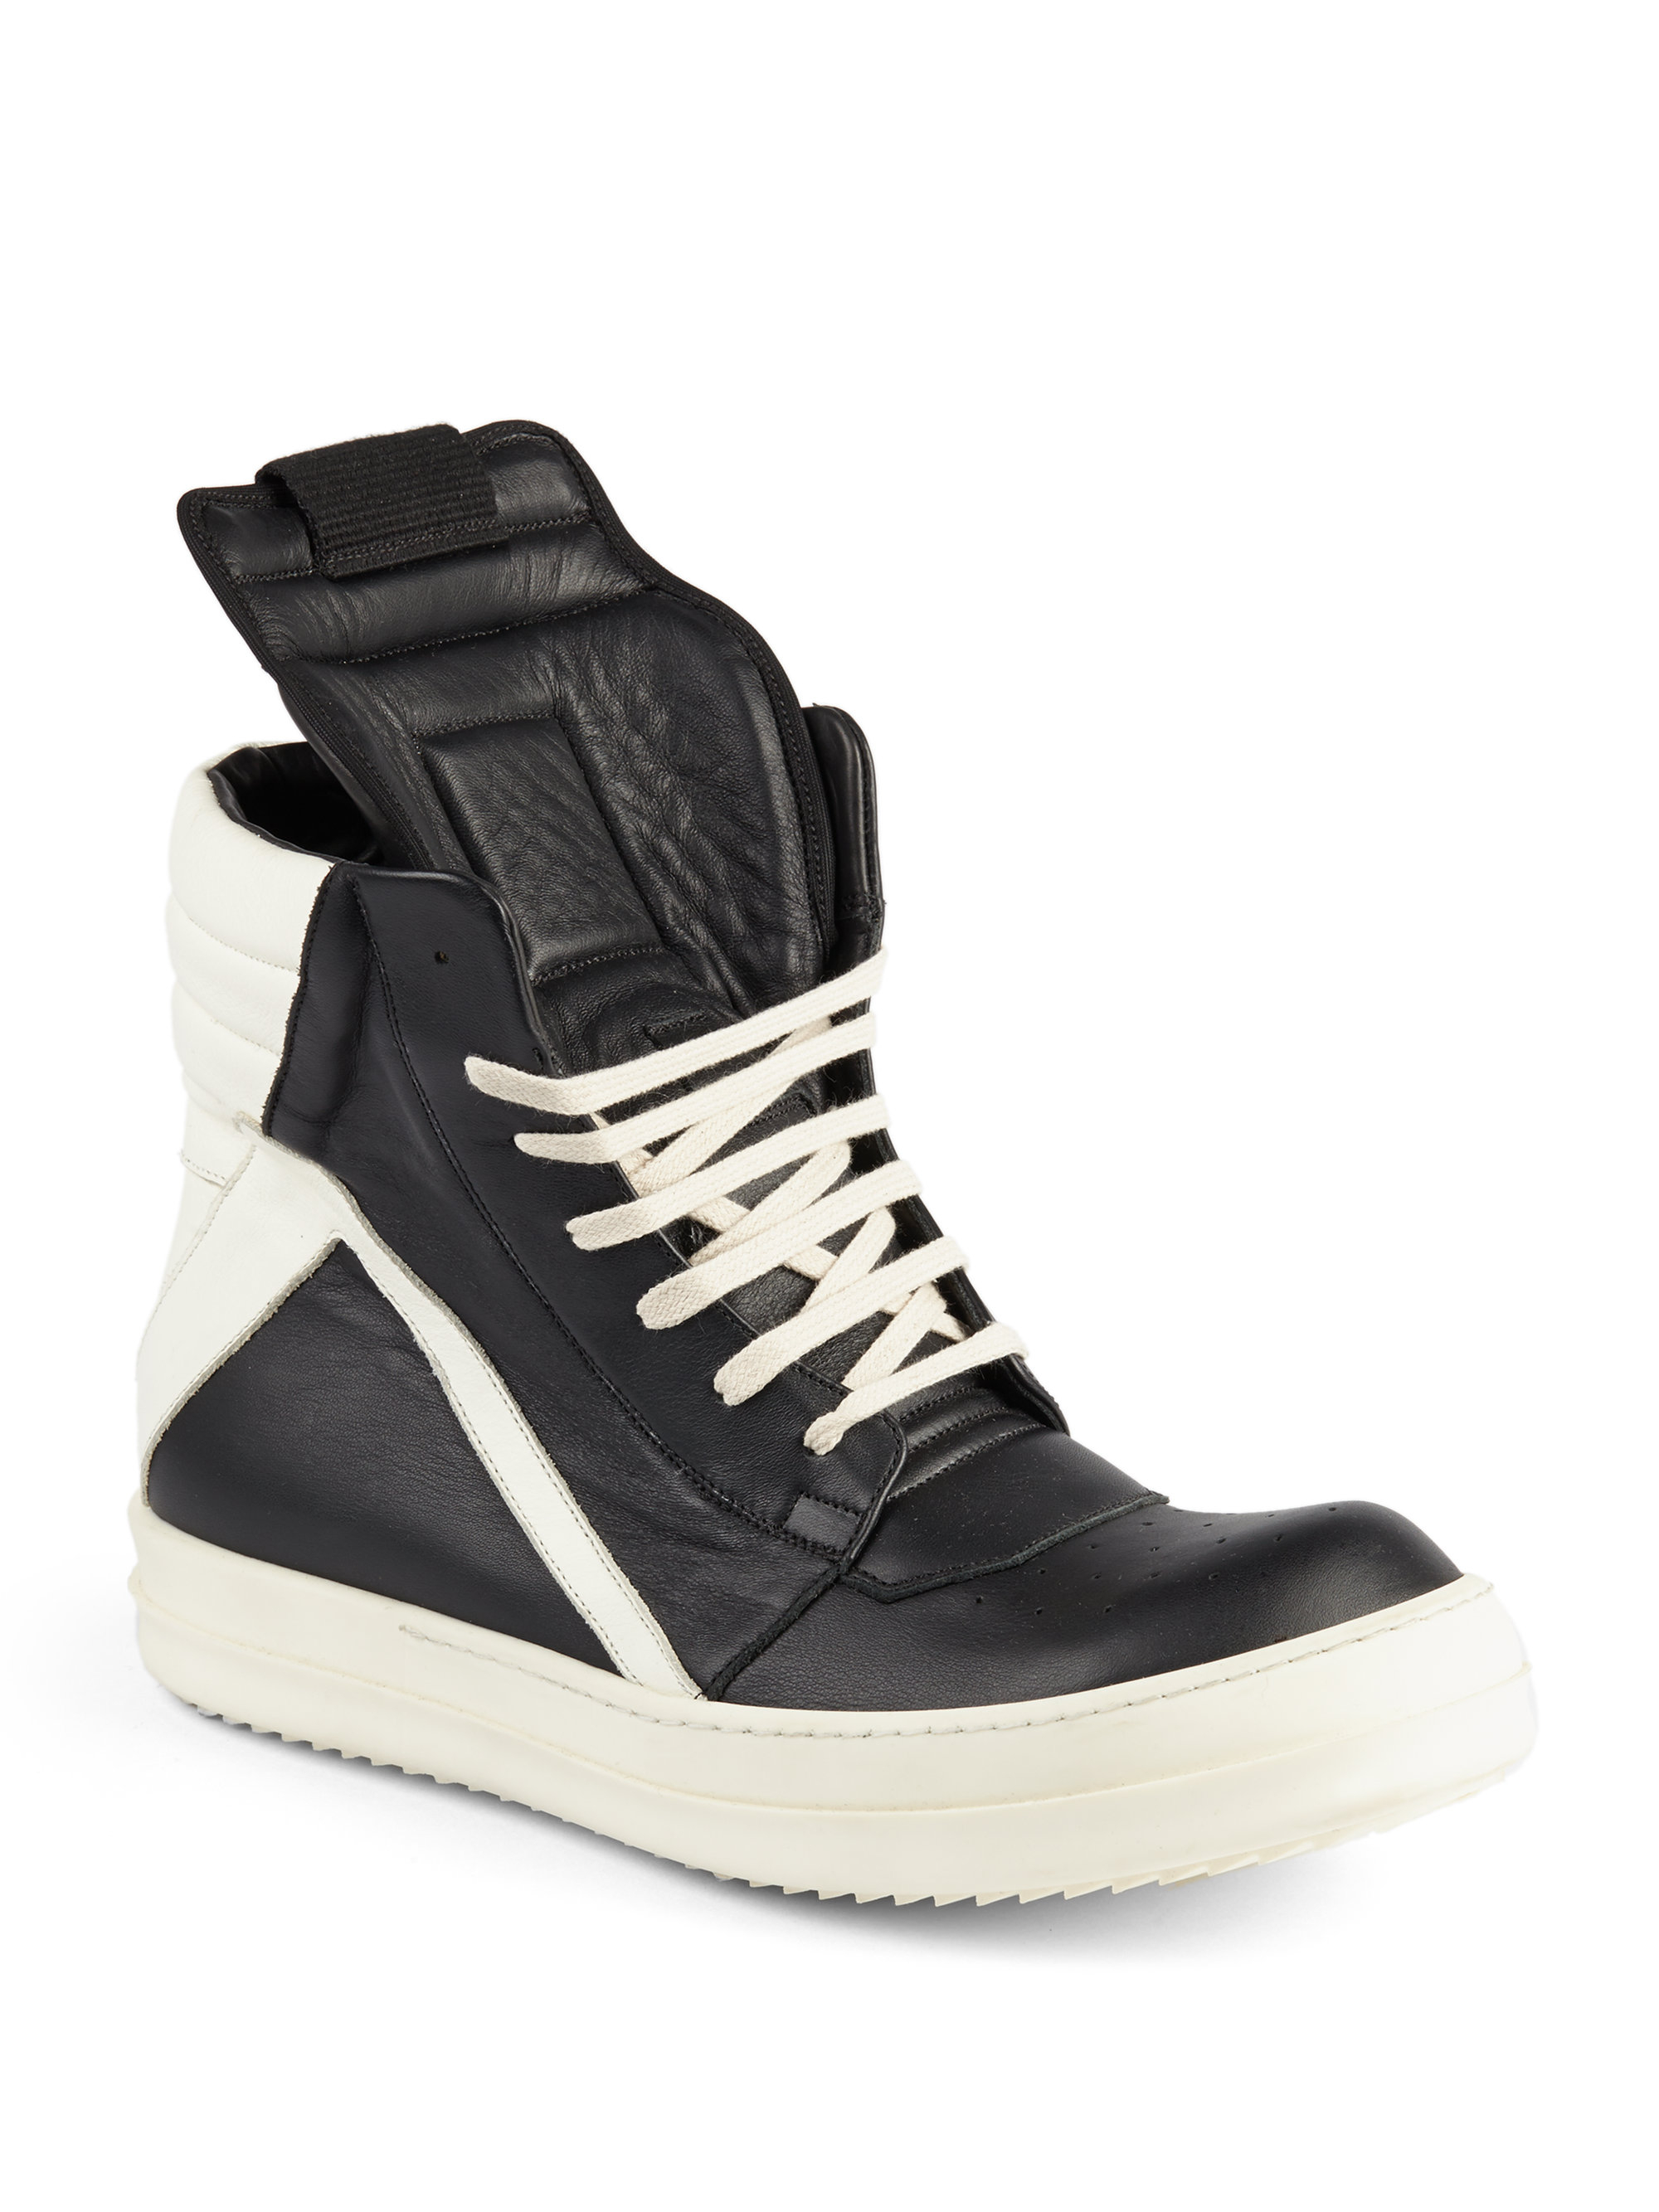 Rick Owens & Off- Leather High-Top Sneakers DxIsJ3